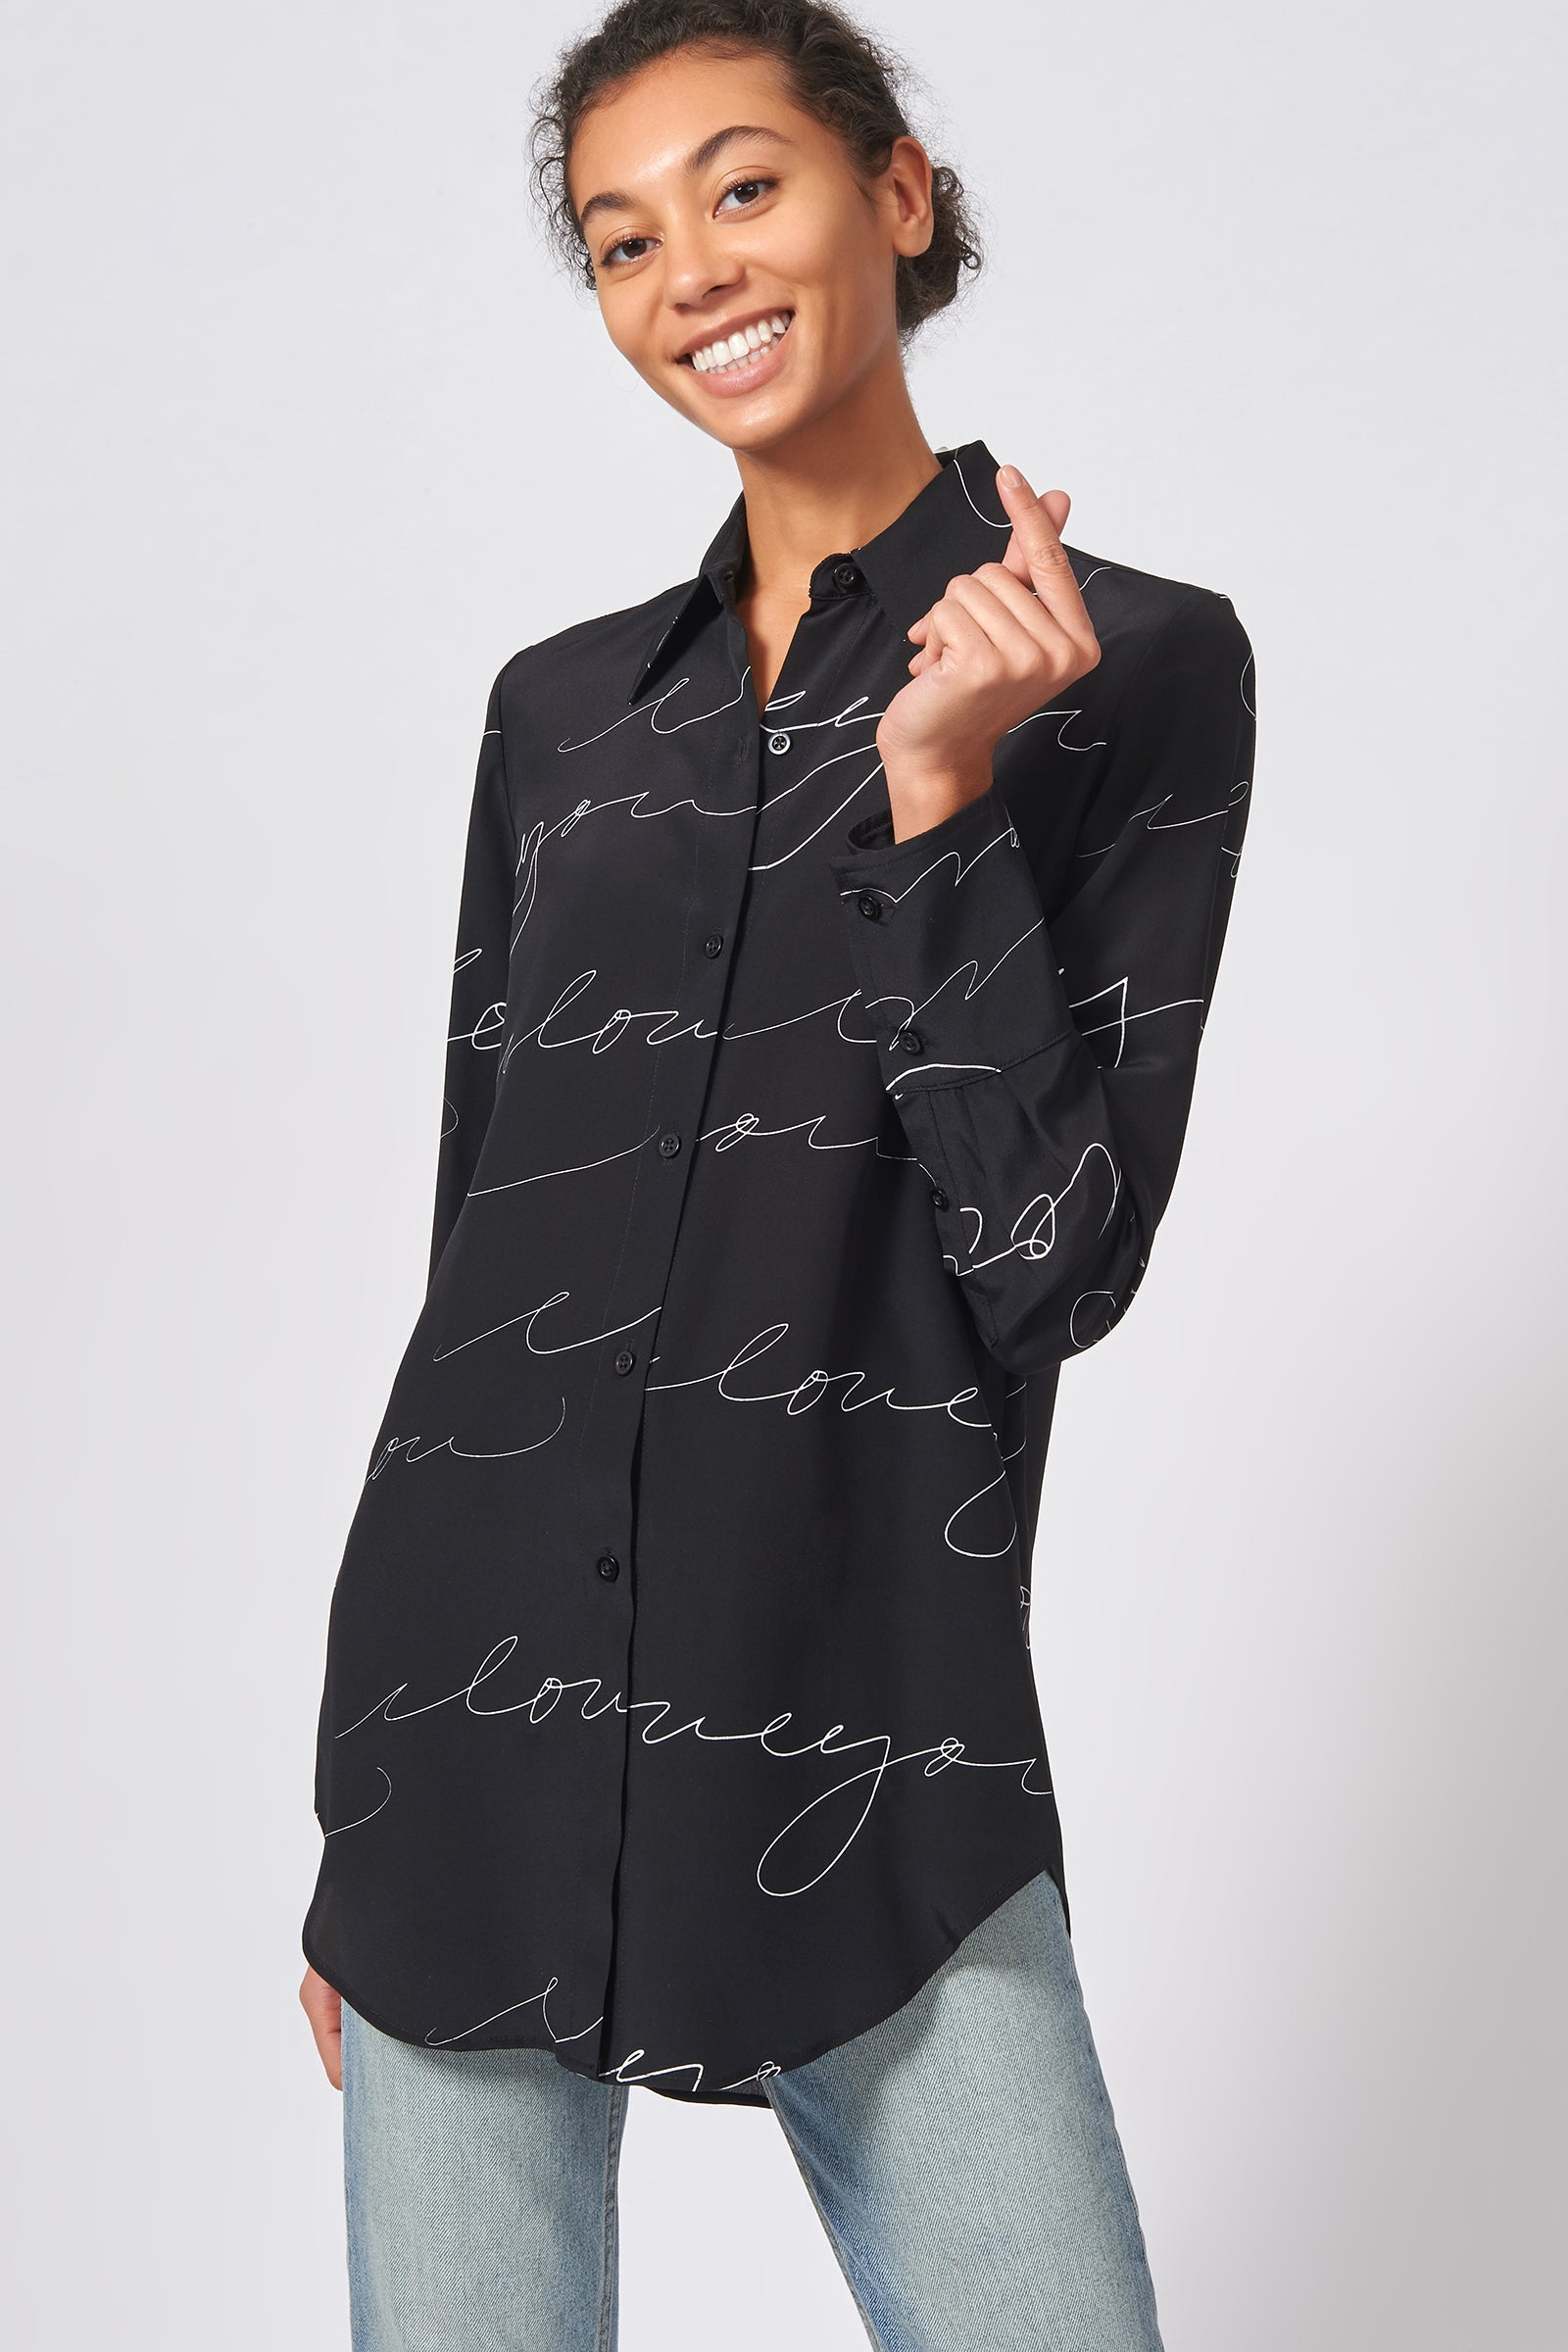 Kal Rieman Shirt Tail Tunic in Black I Love You Print on Model Front View